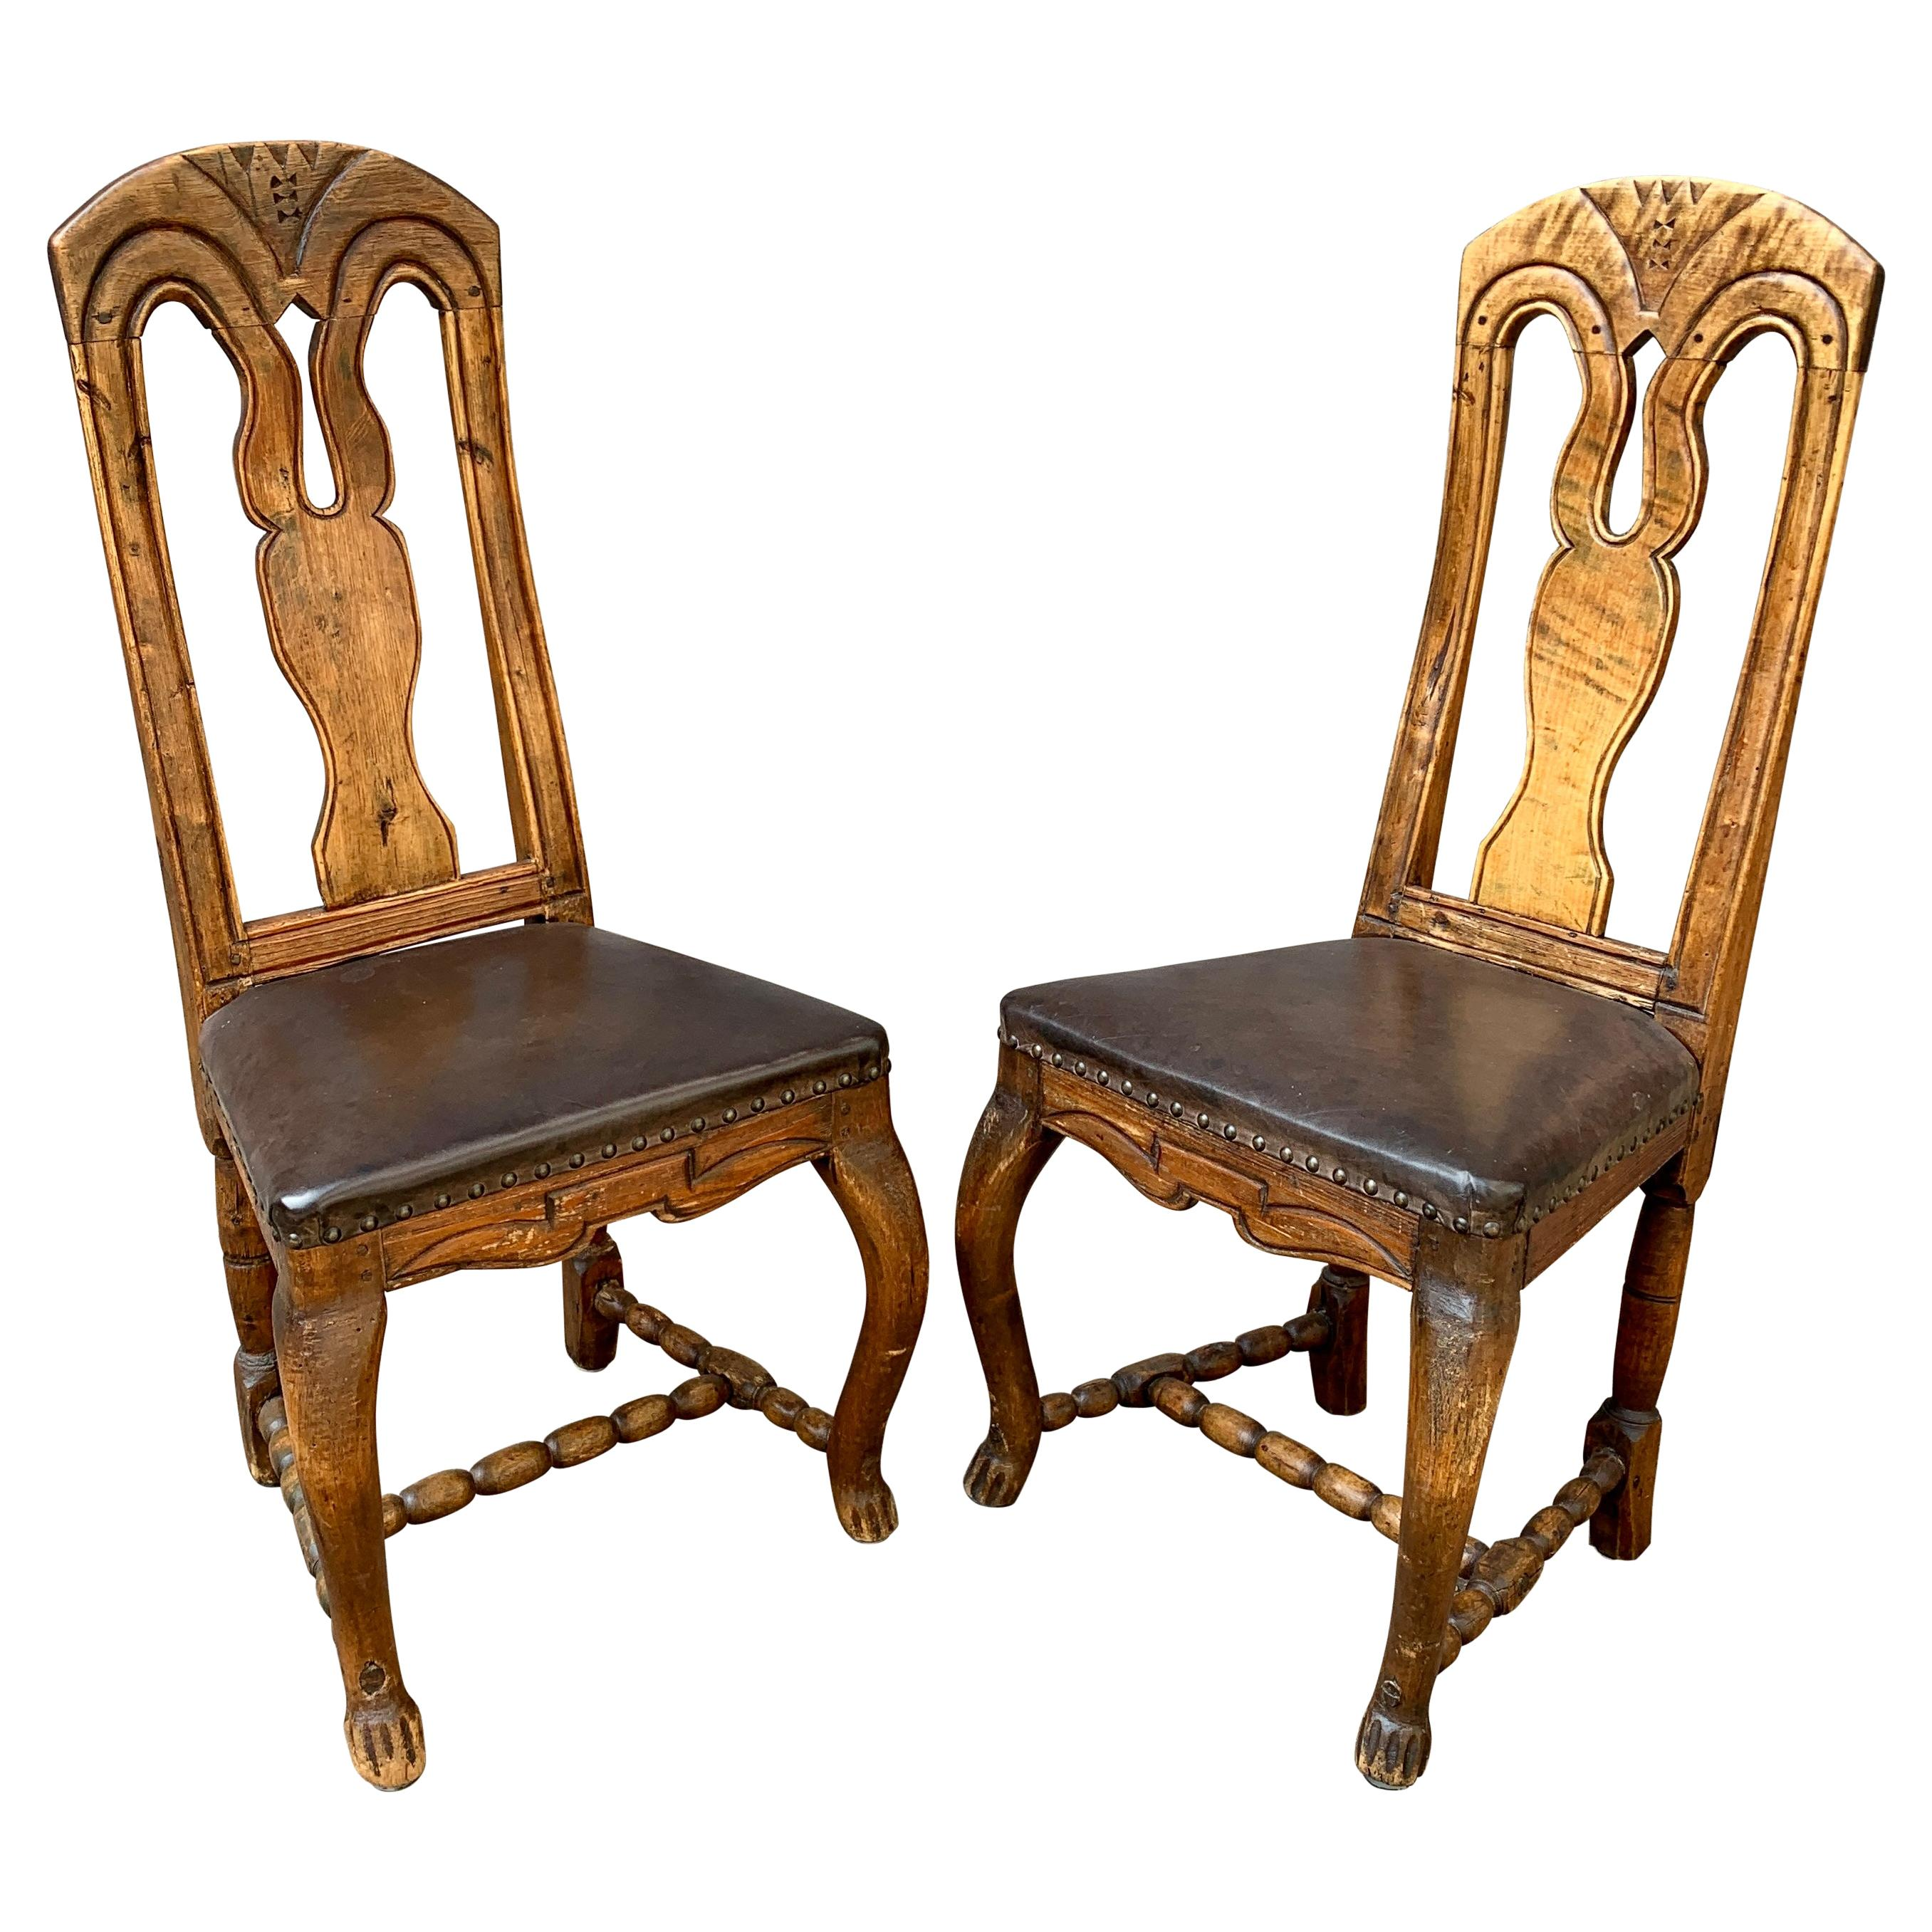 Pair Norwegian 18th Century Rococo Dining Chairs with Leather Seats